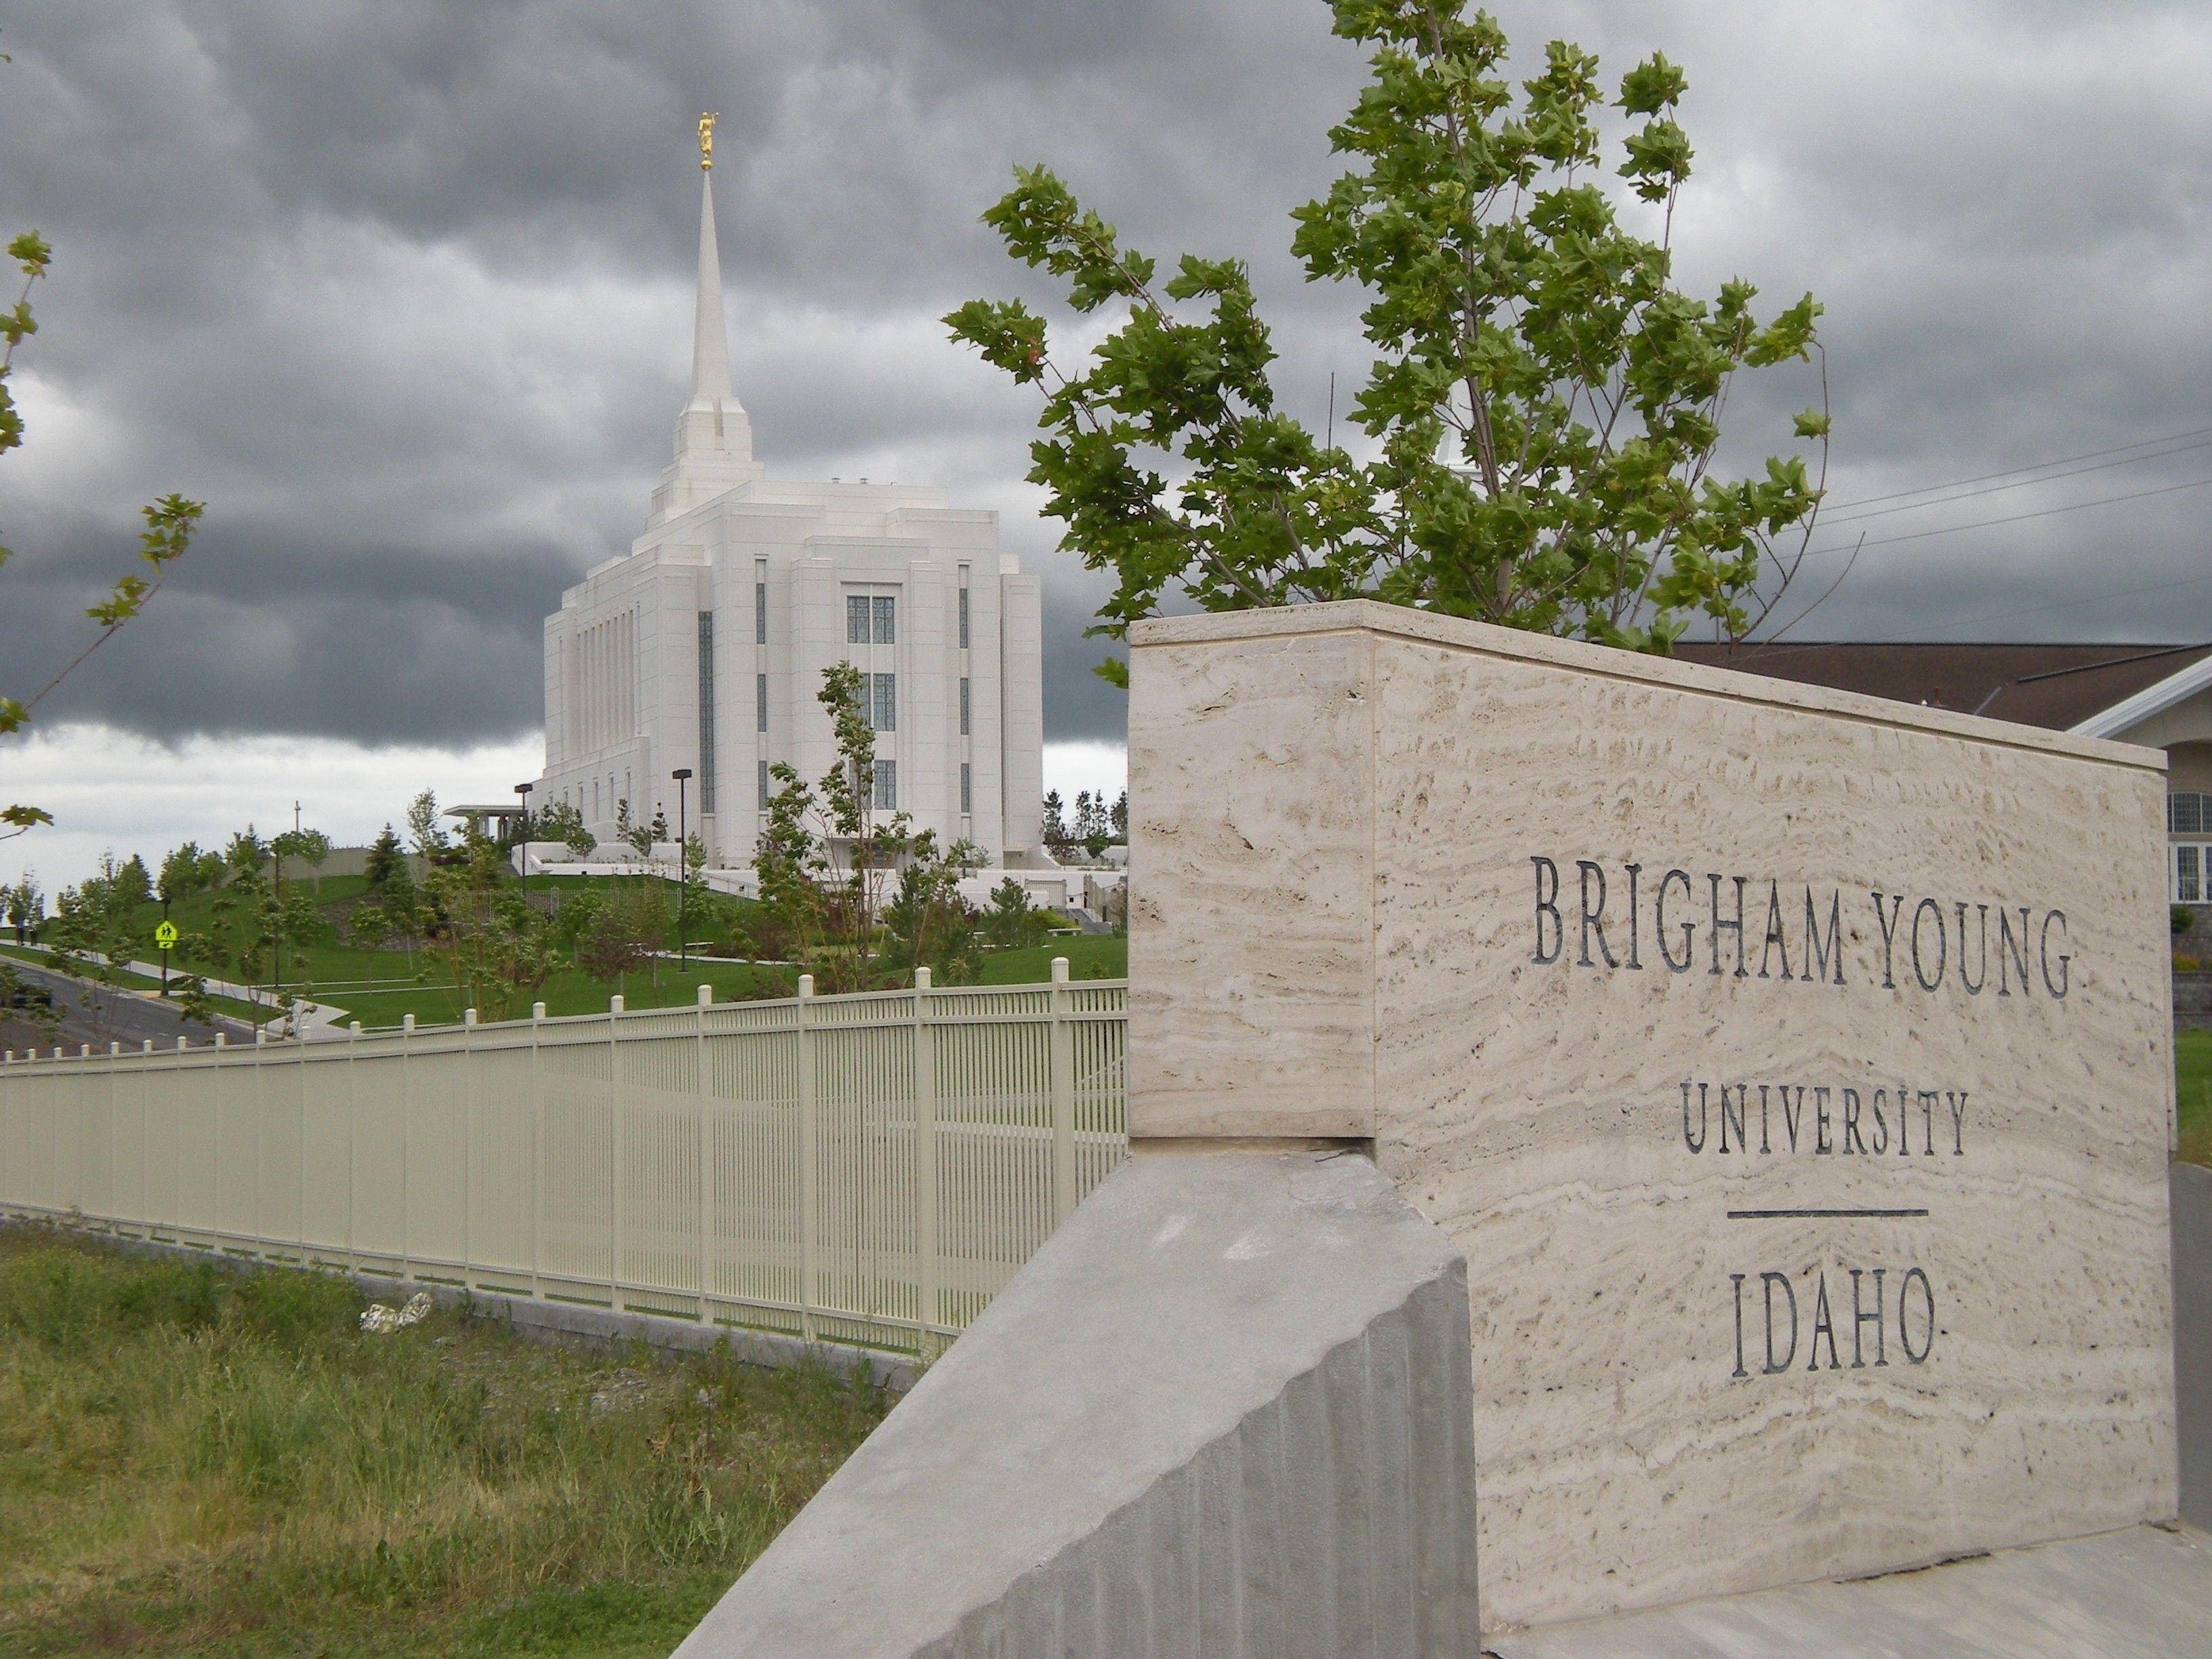 The entire Rexburg Idaho Temple, including the school, name sign, and scenery.